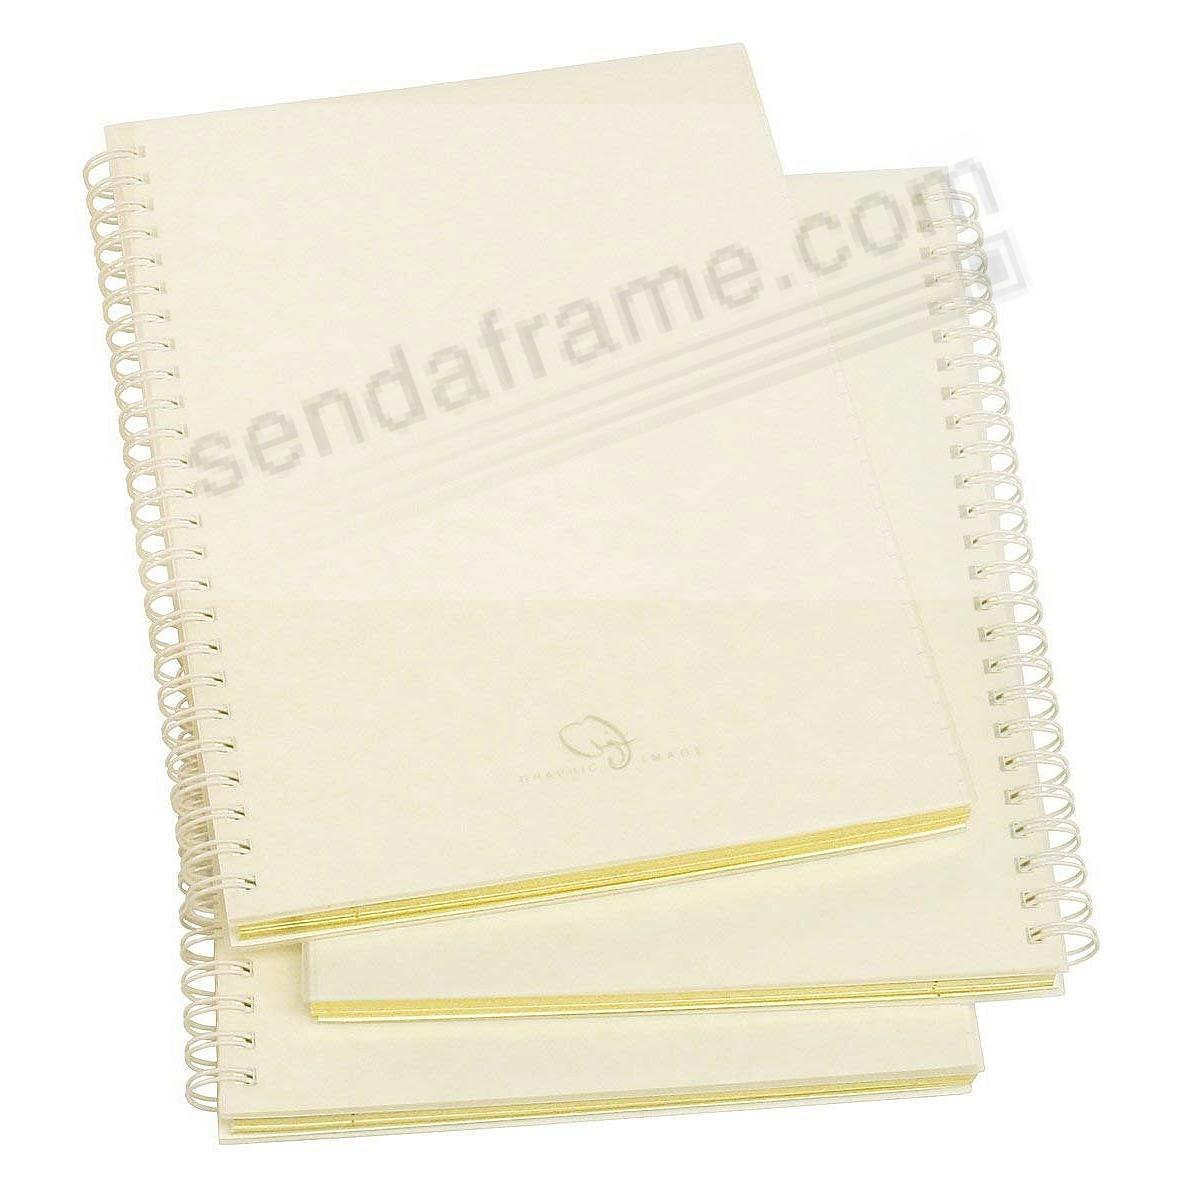 Genuine Wire-O-Notebook Refills for 9-in Journals (Large) w/Gold Edge by Graphic Image™ (set of 3)